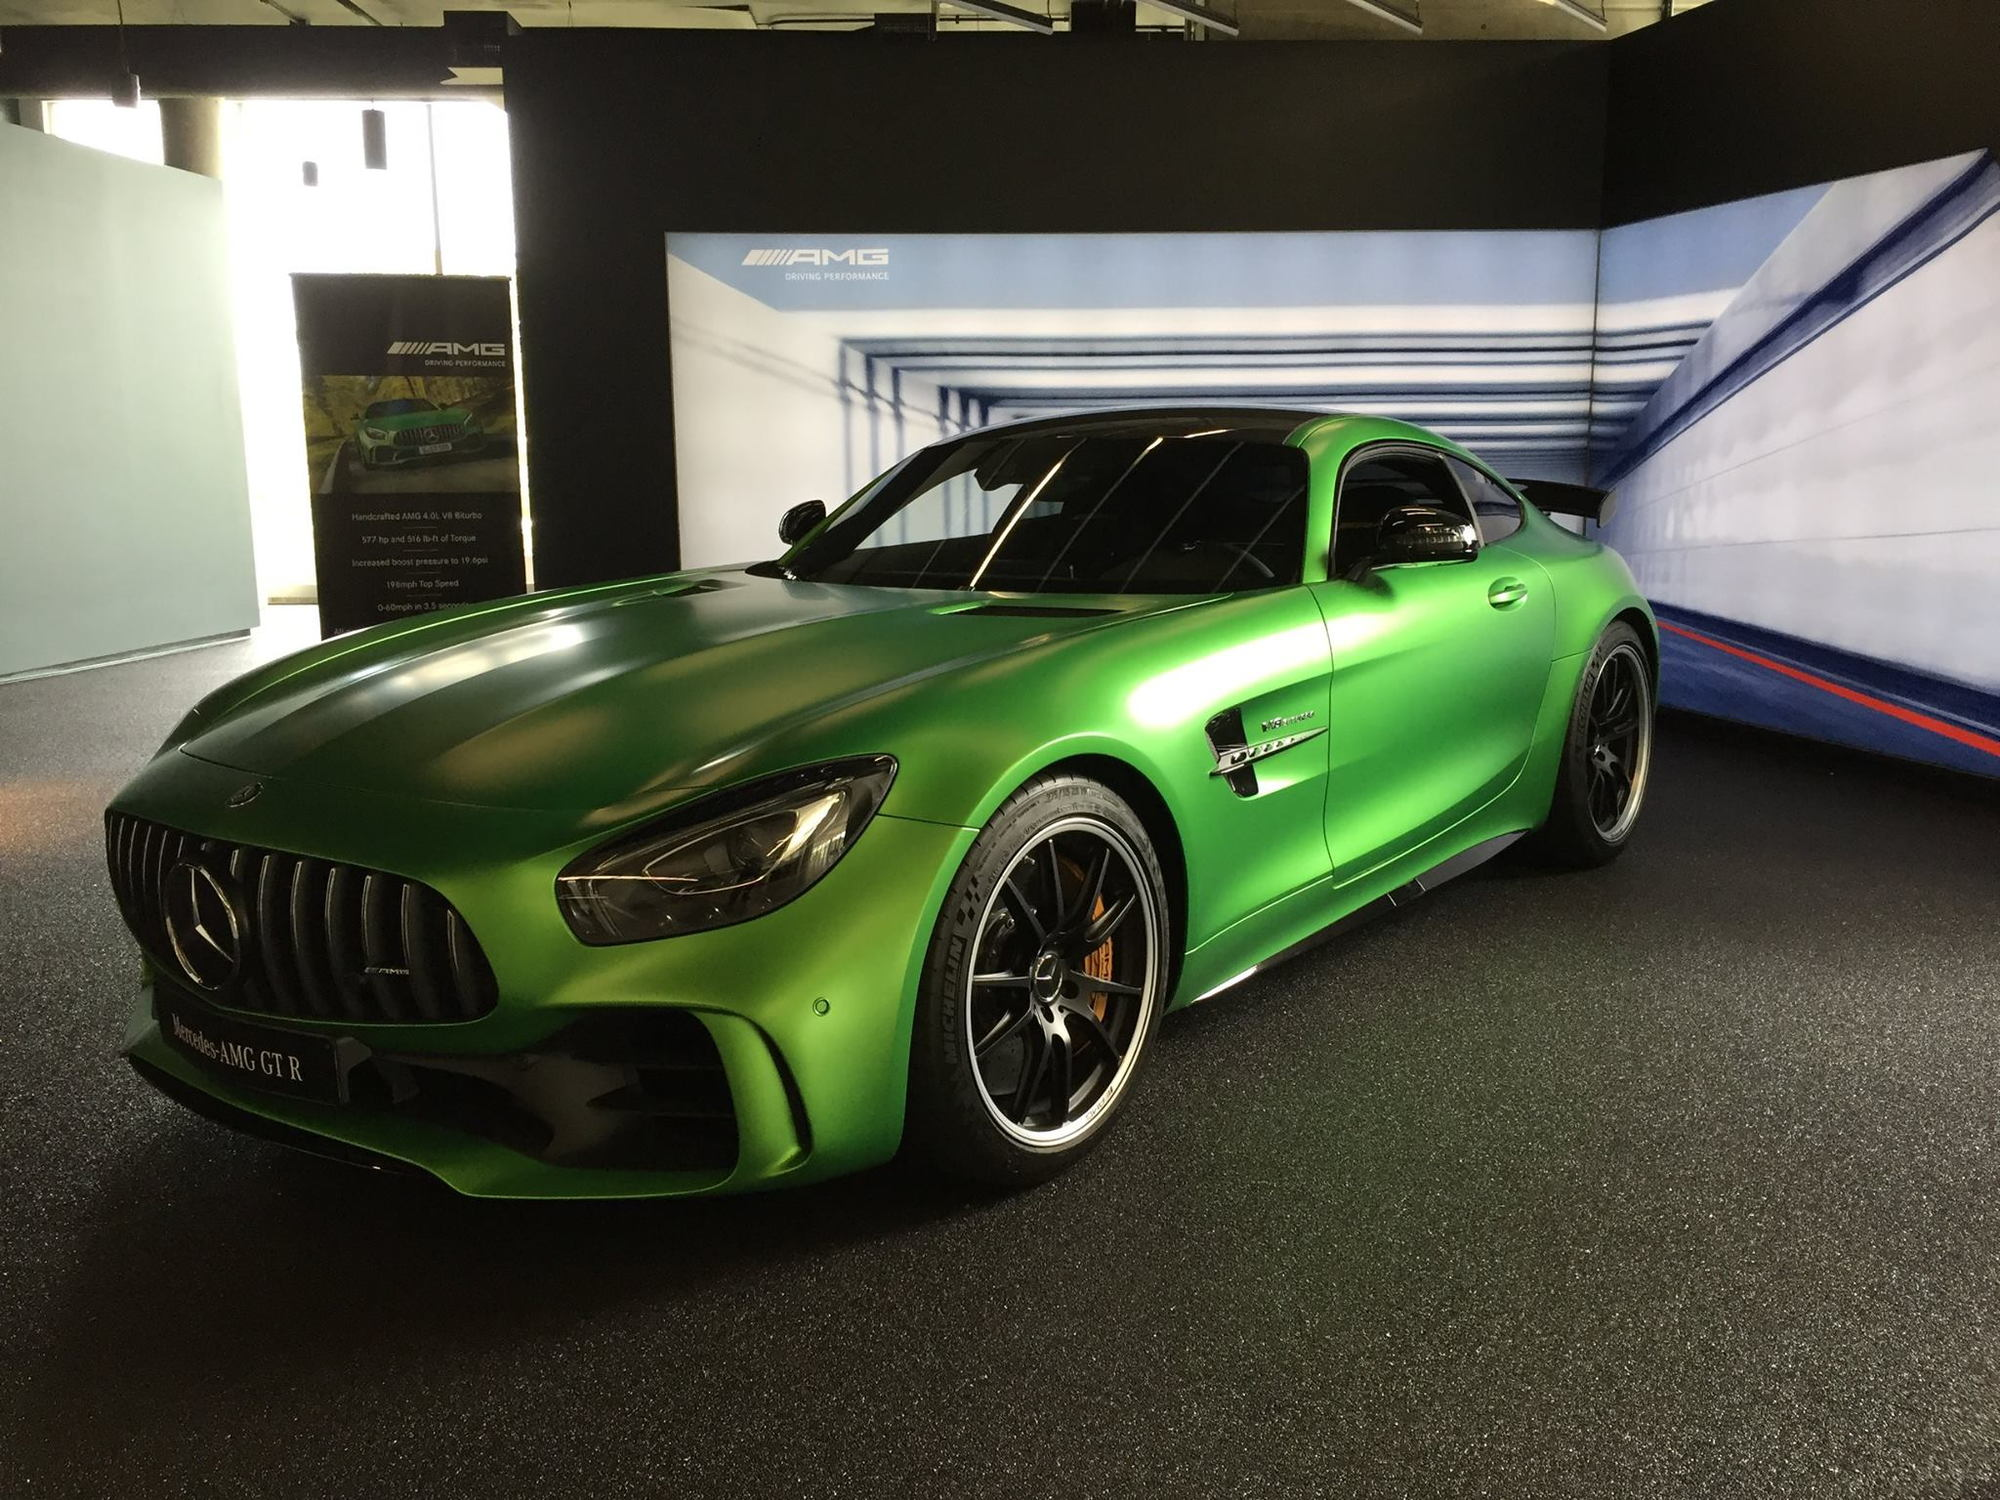 Mercedes Amg Gt Sports Car >> AMG GTR Sneak Peak! - MBWorld.org Forums